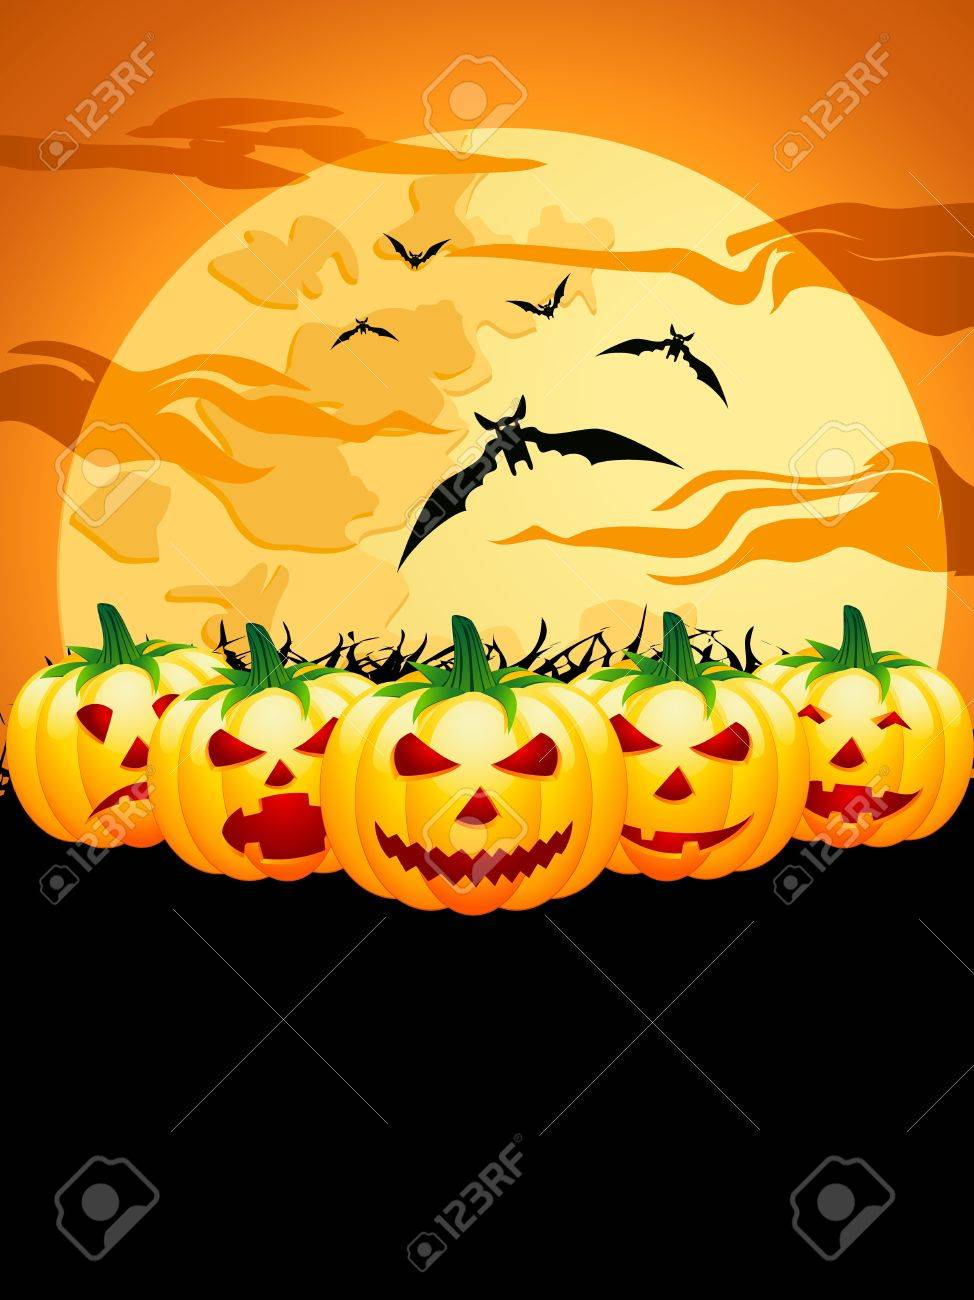 Halloween background with pumpkins and bats Stock Vector - 15721604